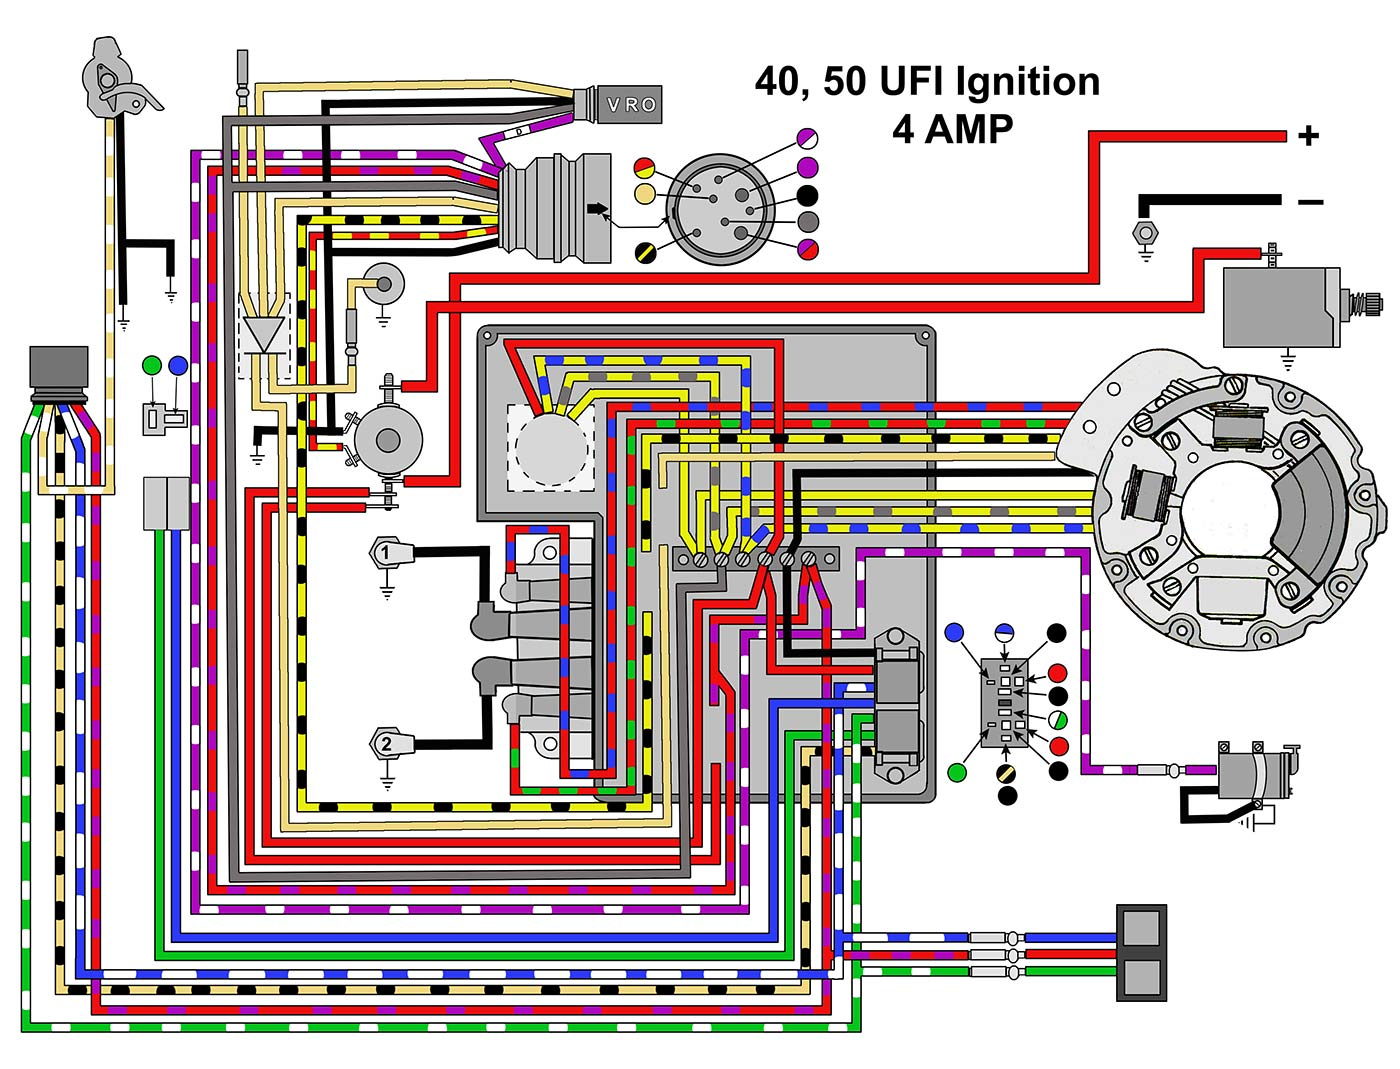 mastertech marine evinrude johnson outboard wiring diagrams HP Mercury Outboard Wiring Diagram  90 HP Force Outboard Wiring Diagram 70 HP Mercury Outboard Motor Diagram 70 HP Johnson Outboard Wiring Diagram